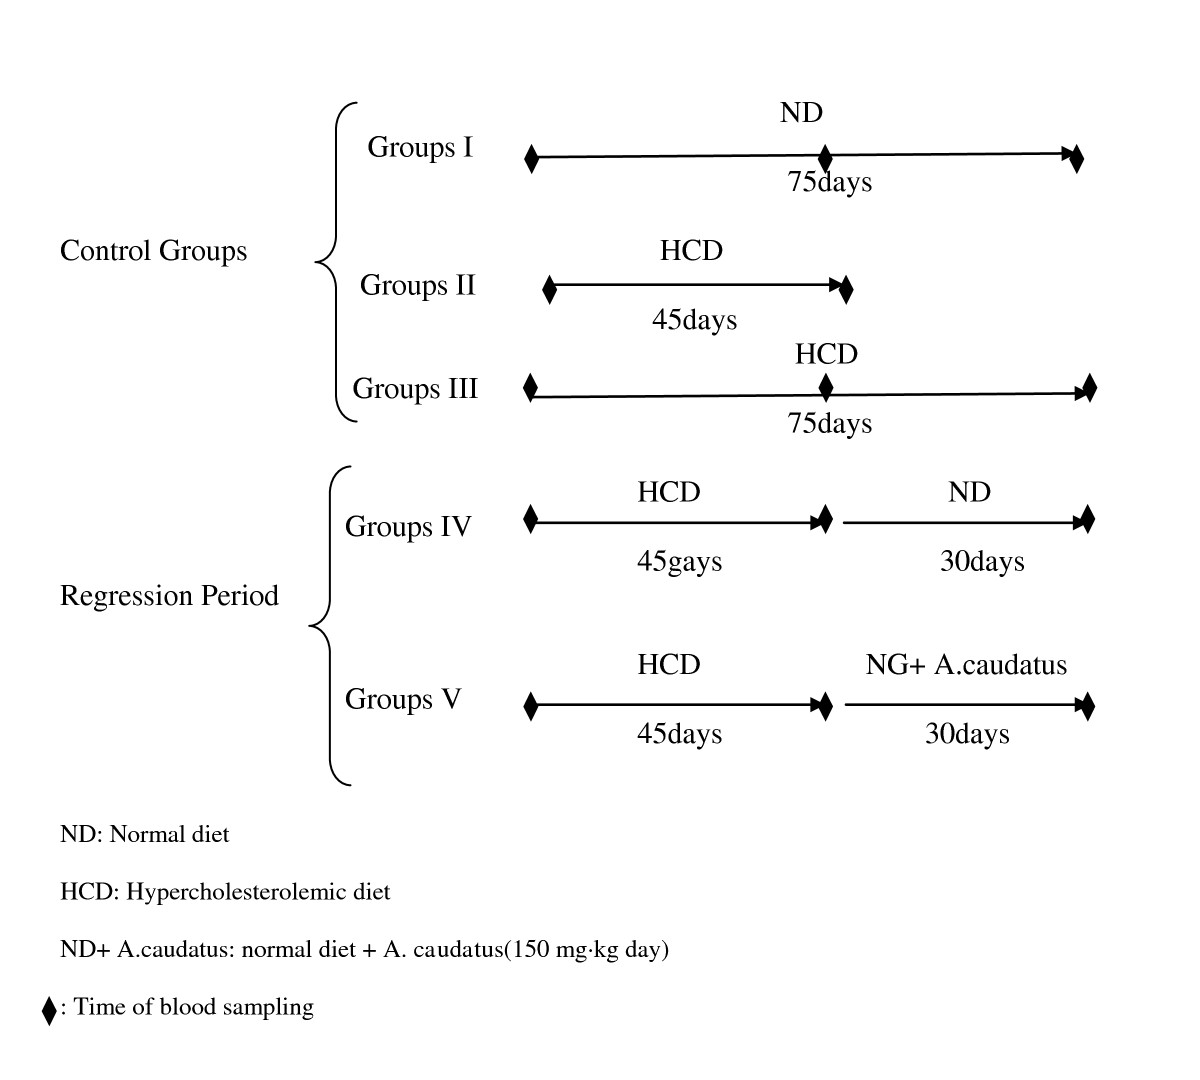 https://static-content.springer.com/image/art%3A10.1186%2F1476-511X-10-89/MediaObjects/12944_2011_Article_478_Fig1_HTML.jpg